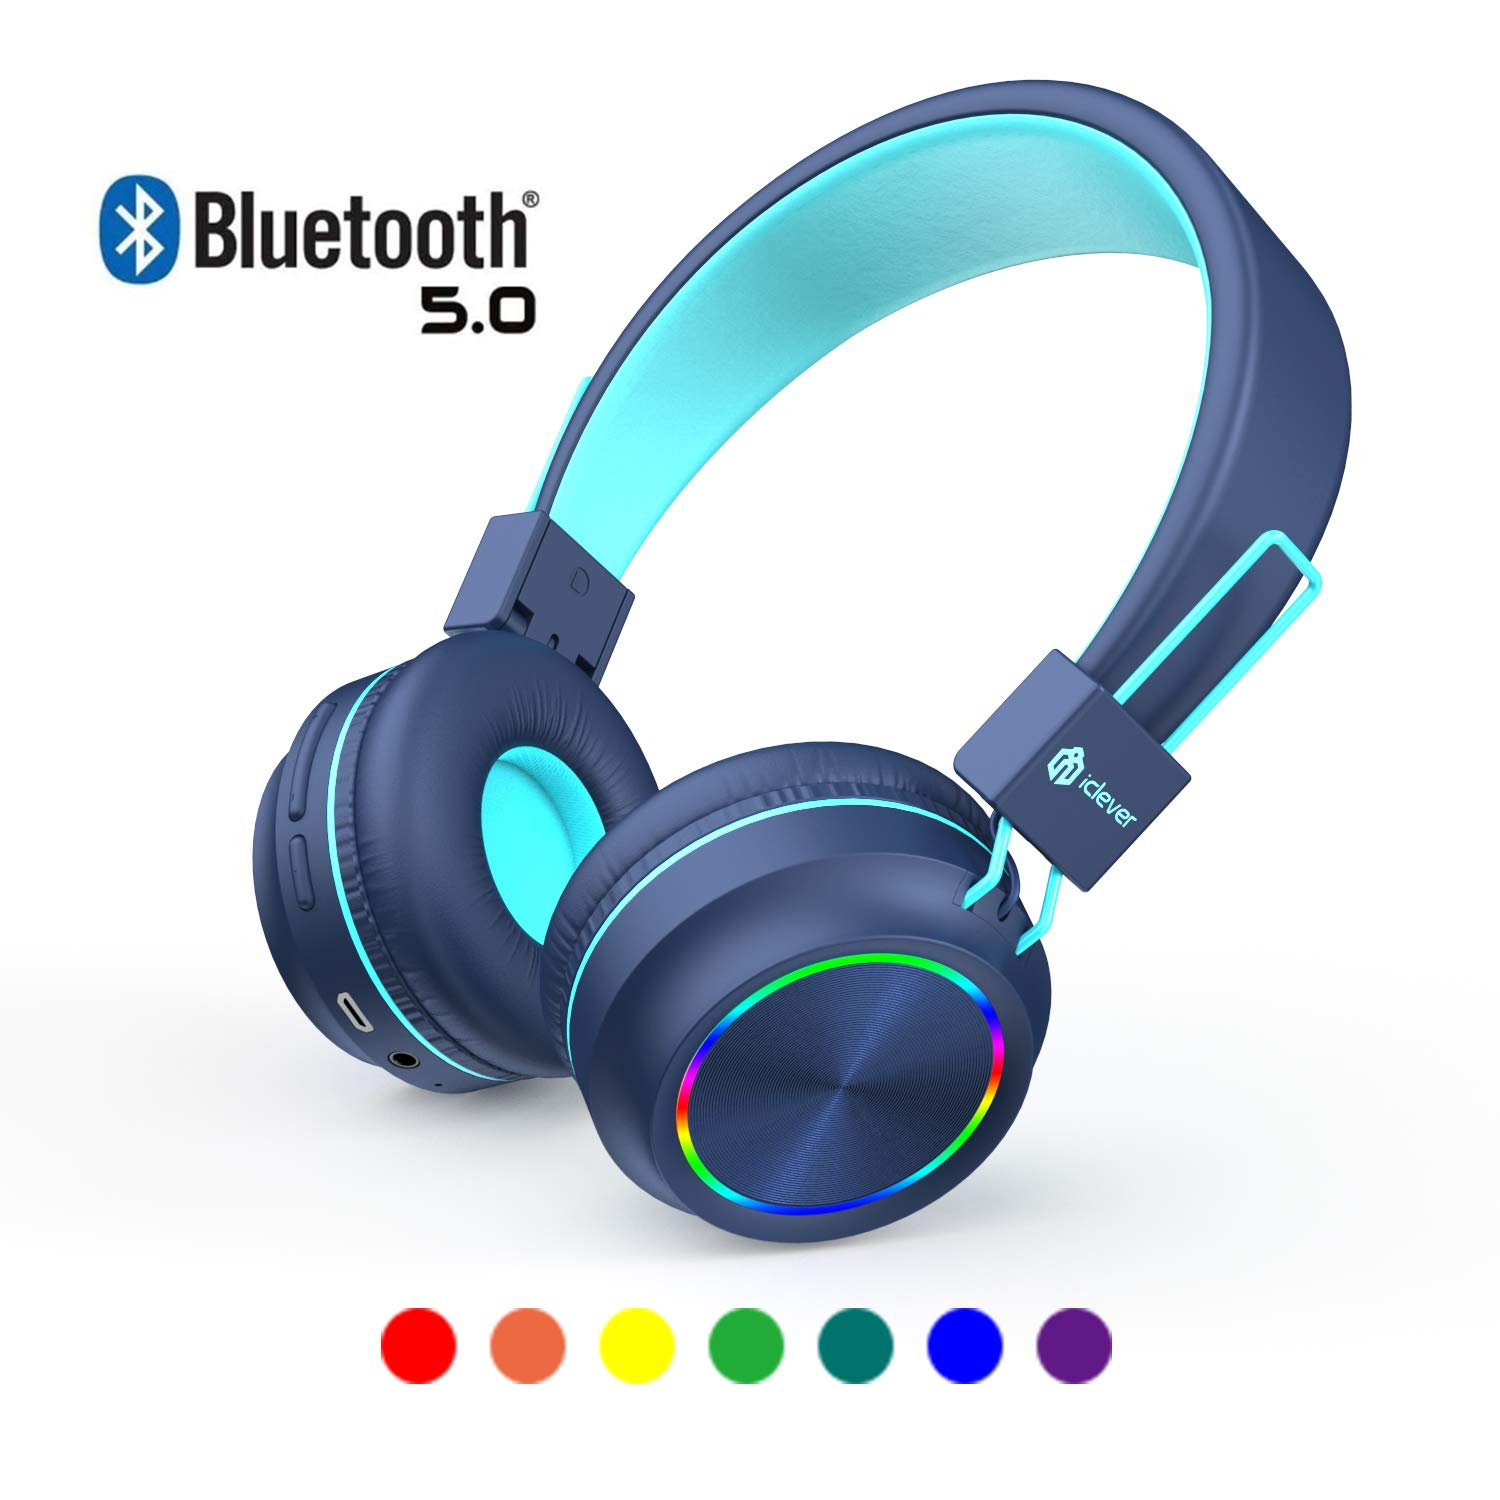 iClever Kids Wireless Headphones, Colorful LED Lights Kids Headphones with MIC, 25H Playtime, Stereo Sound, Bluetooth 5.0, Foldable, Childrens Headphones on Ear for Study Tablet Airplane School, Blue